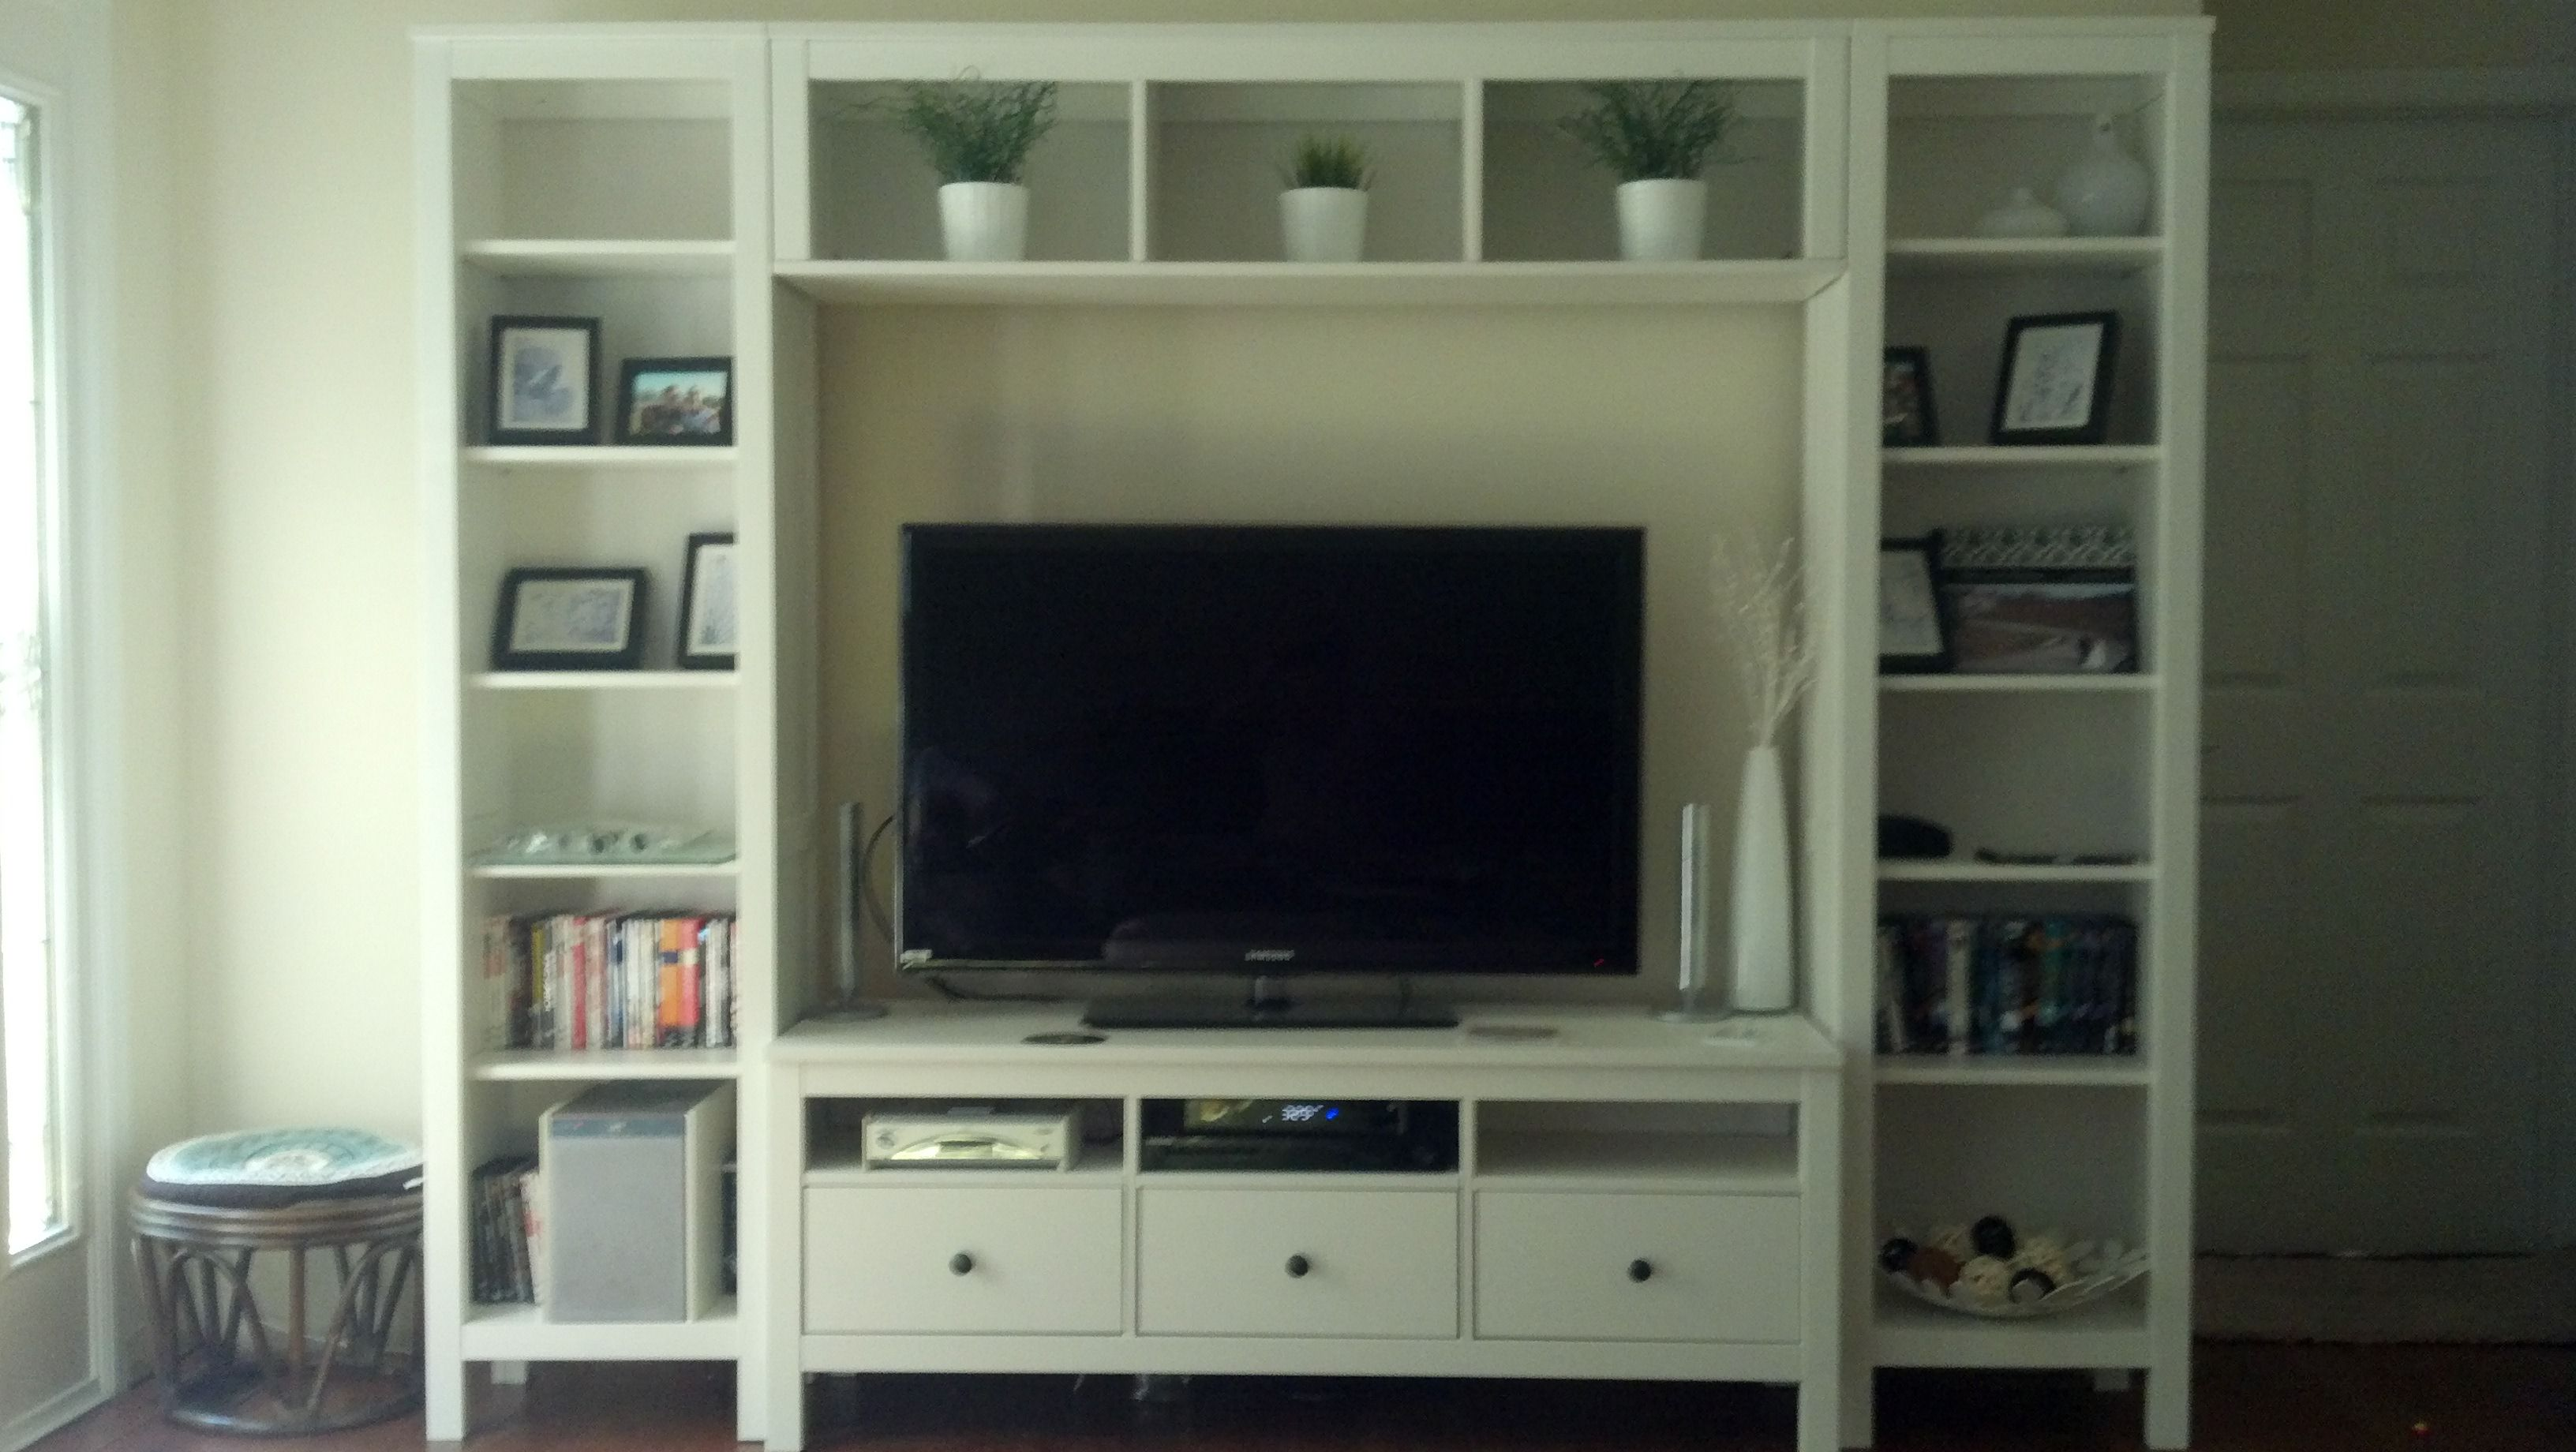 Living Room Entertainment Ikea Entertainment Center Cost 600 Time To Build 3 Hrs